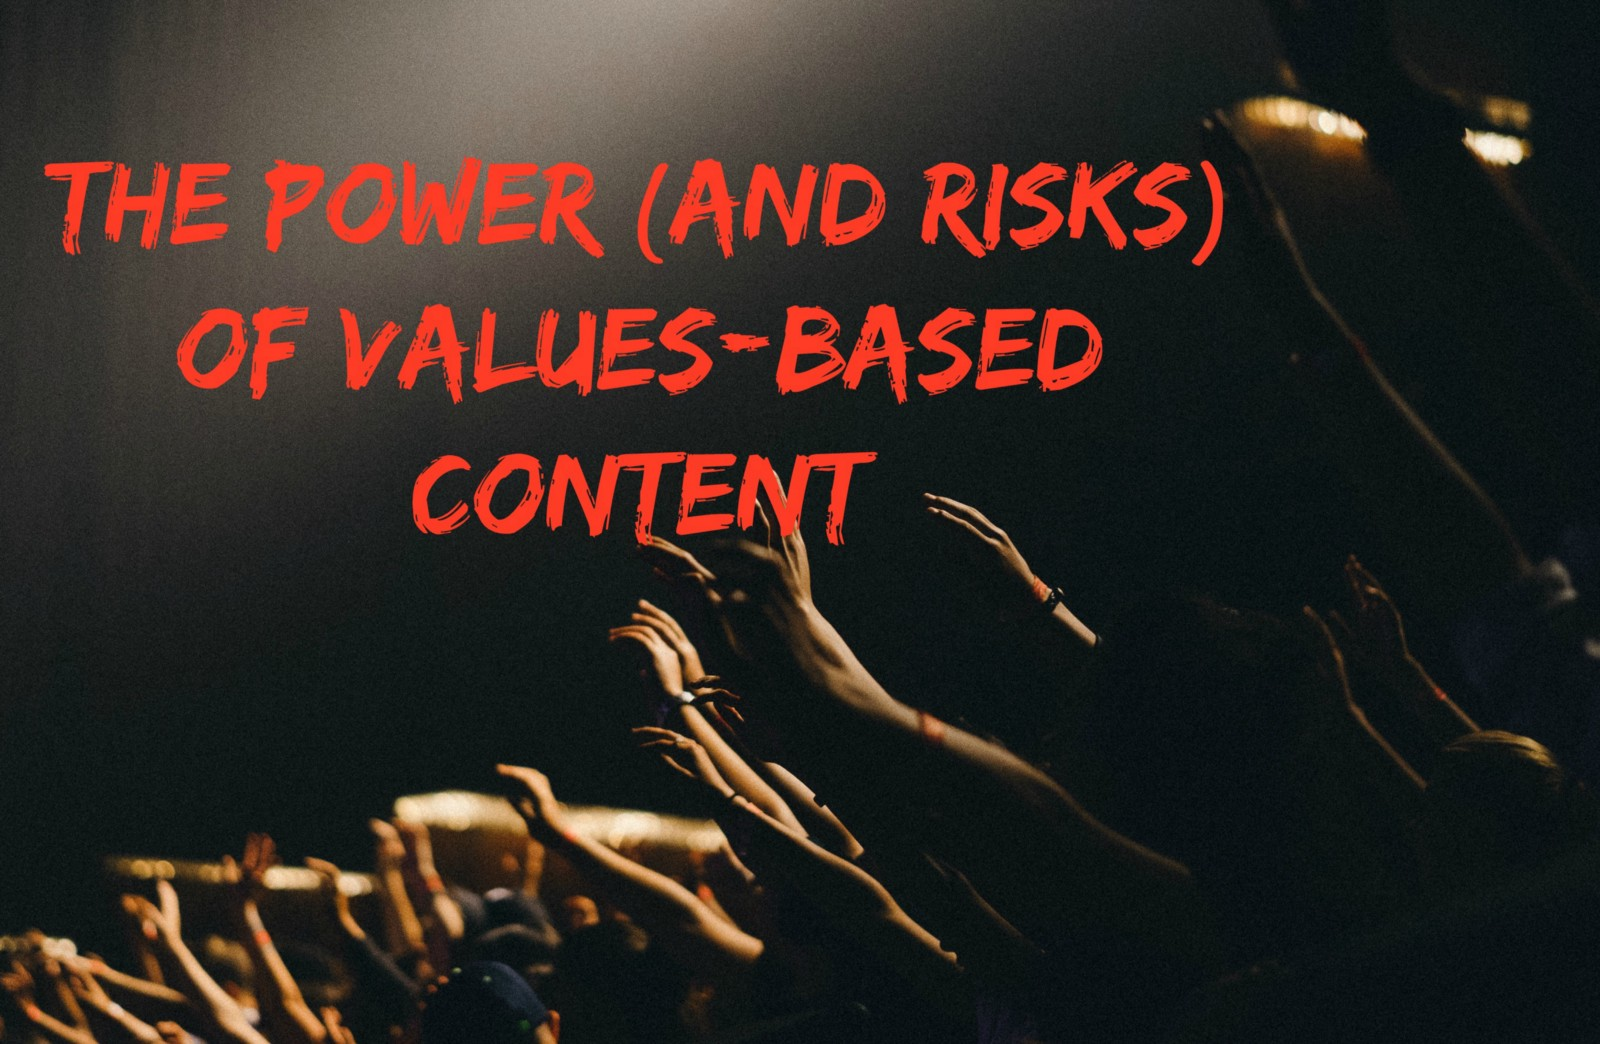 values-based content